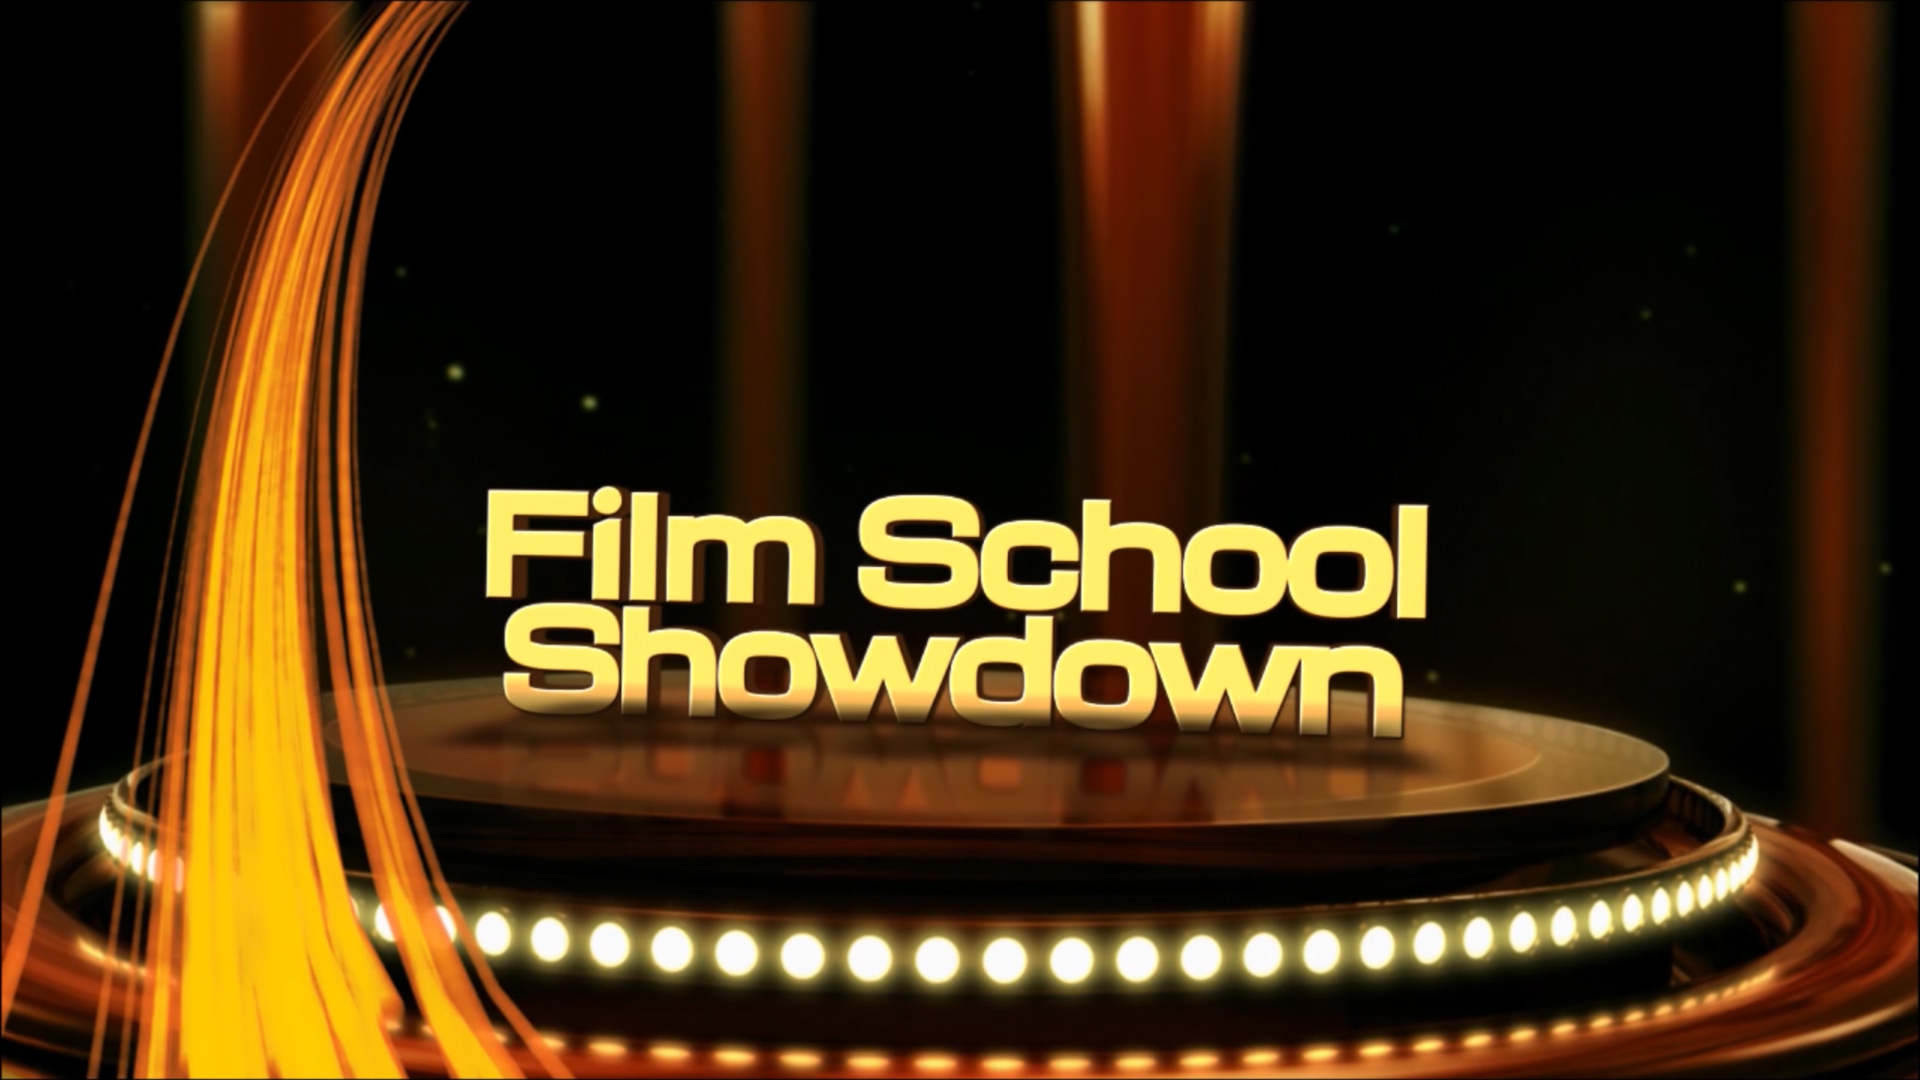 Film School Showdown